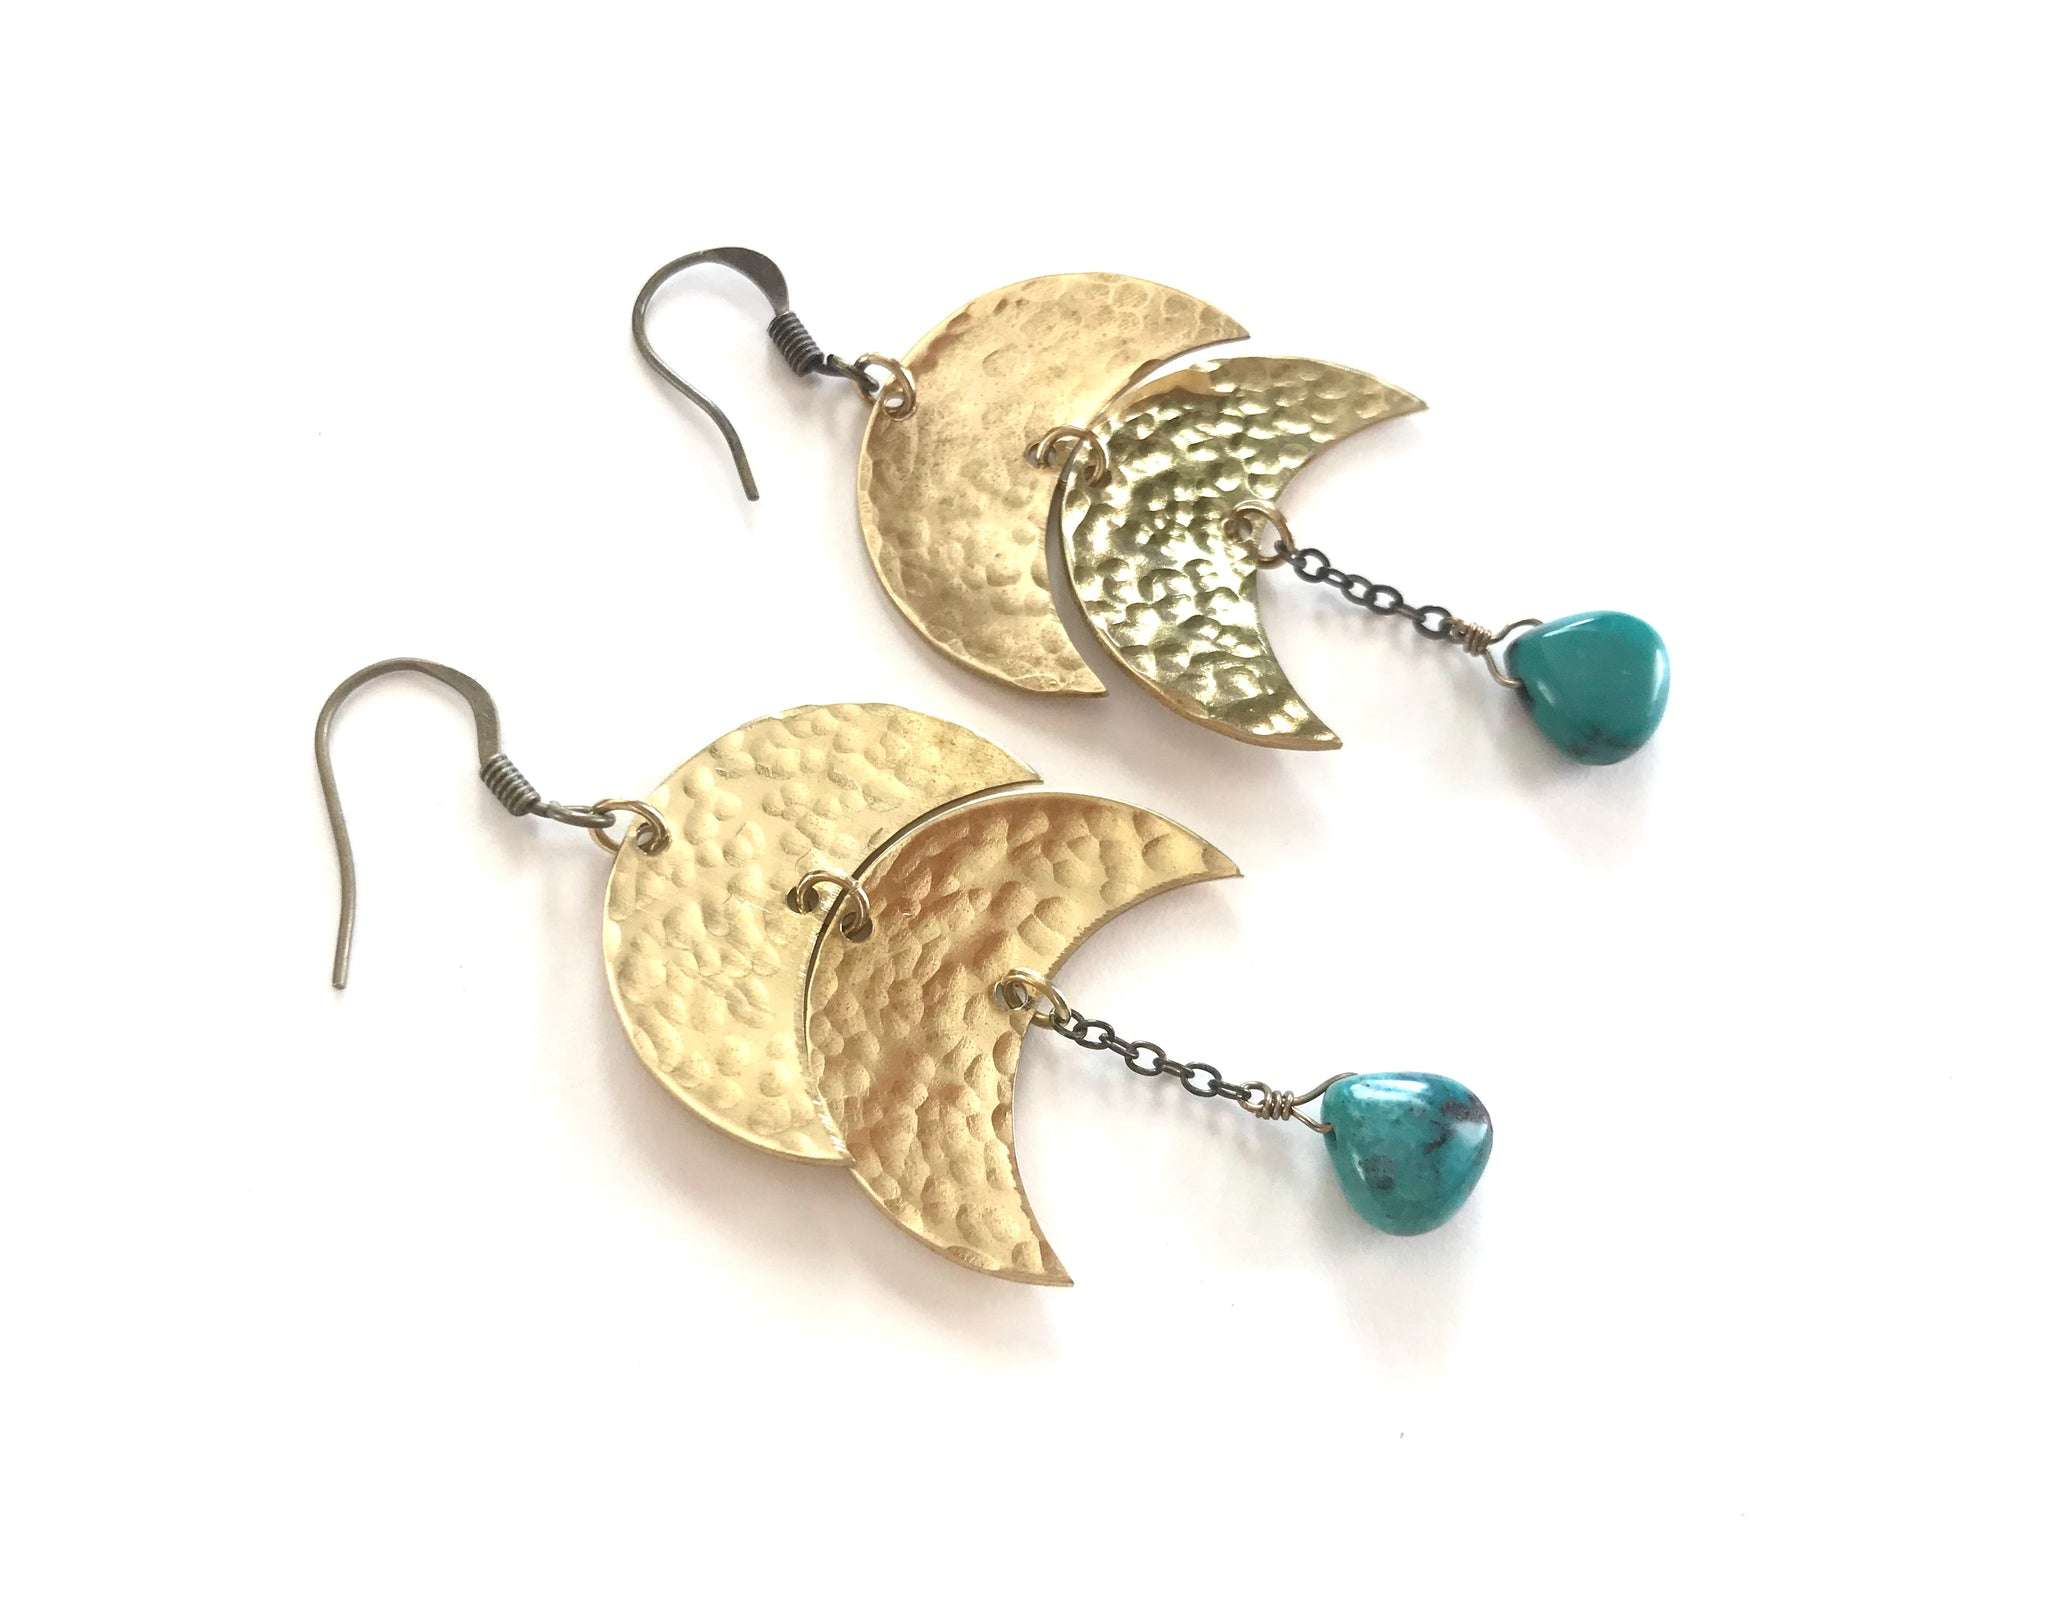 Double crescent moon earrings with turquoise